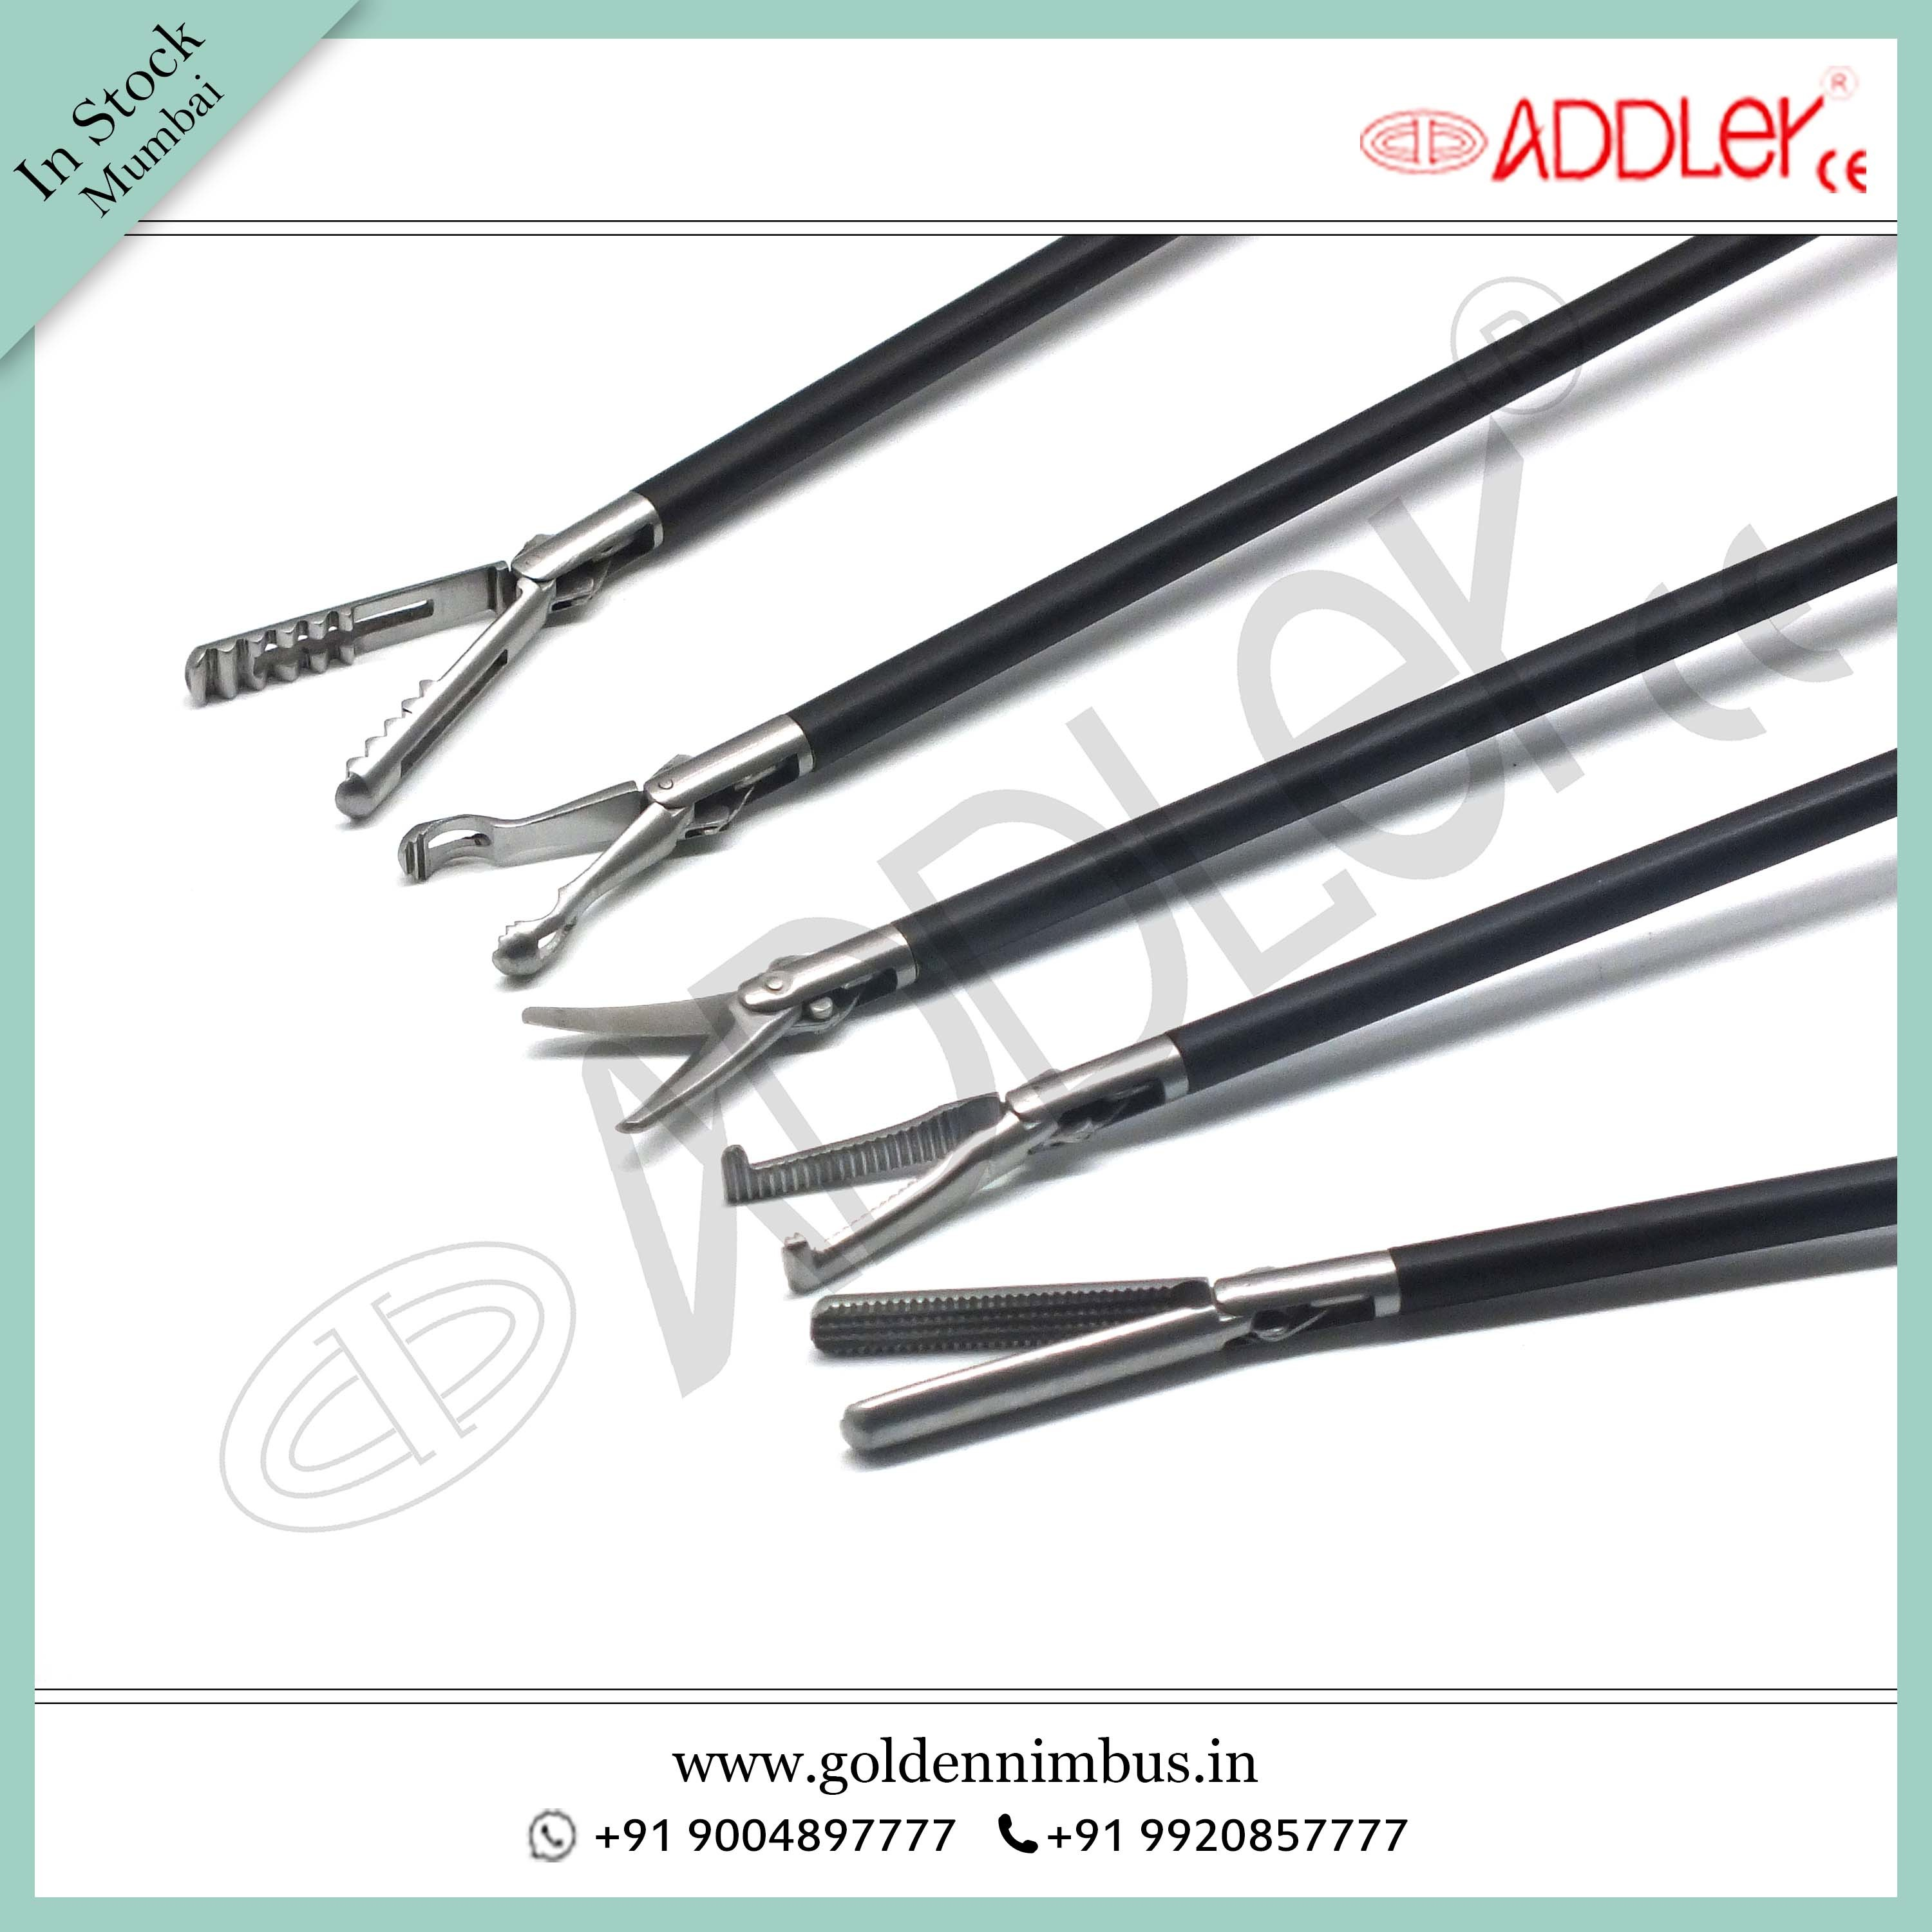 Brand New Addler Laparoscopic & Endoscopic Grasper Set Of 5